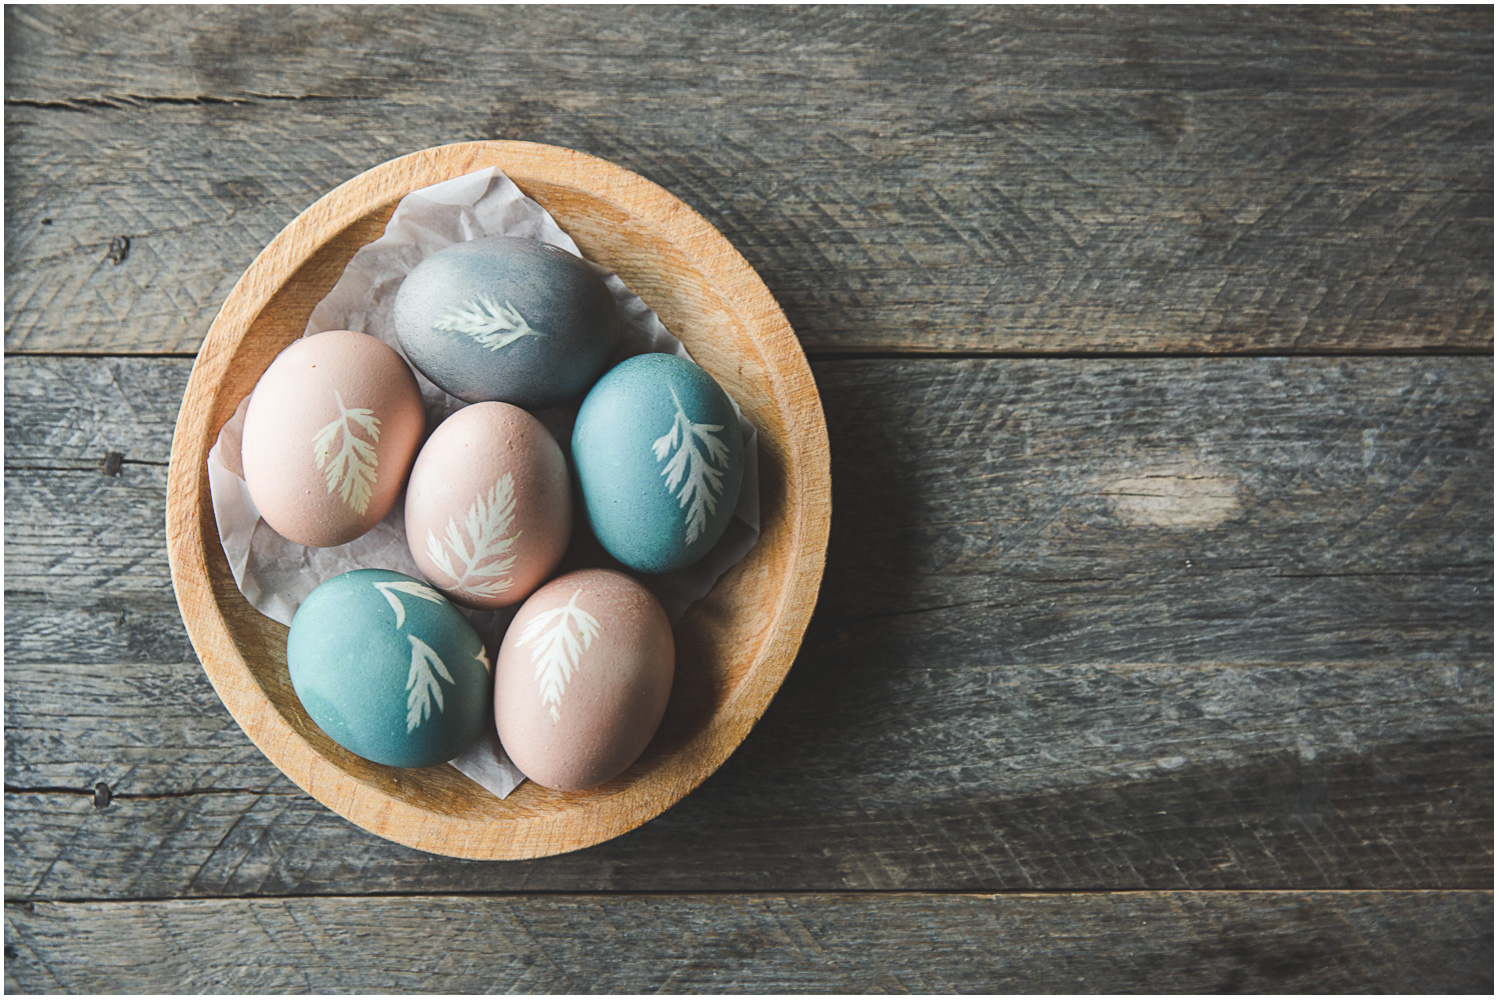 09_Bragg_Kate_Easter_Egg_Natural_Dye.jpg